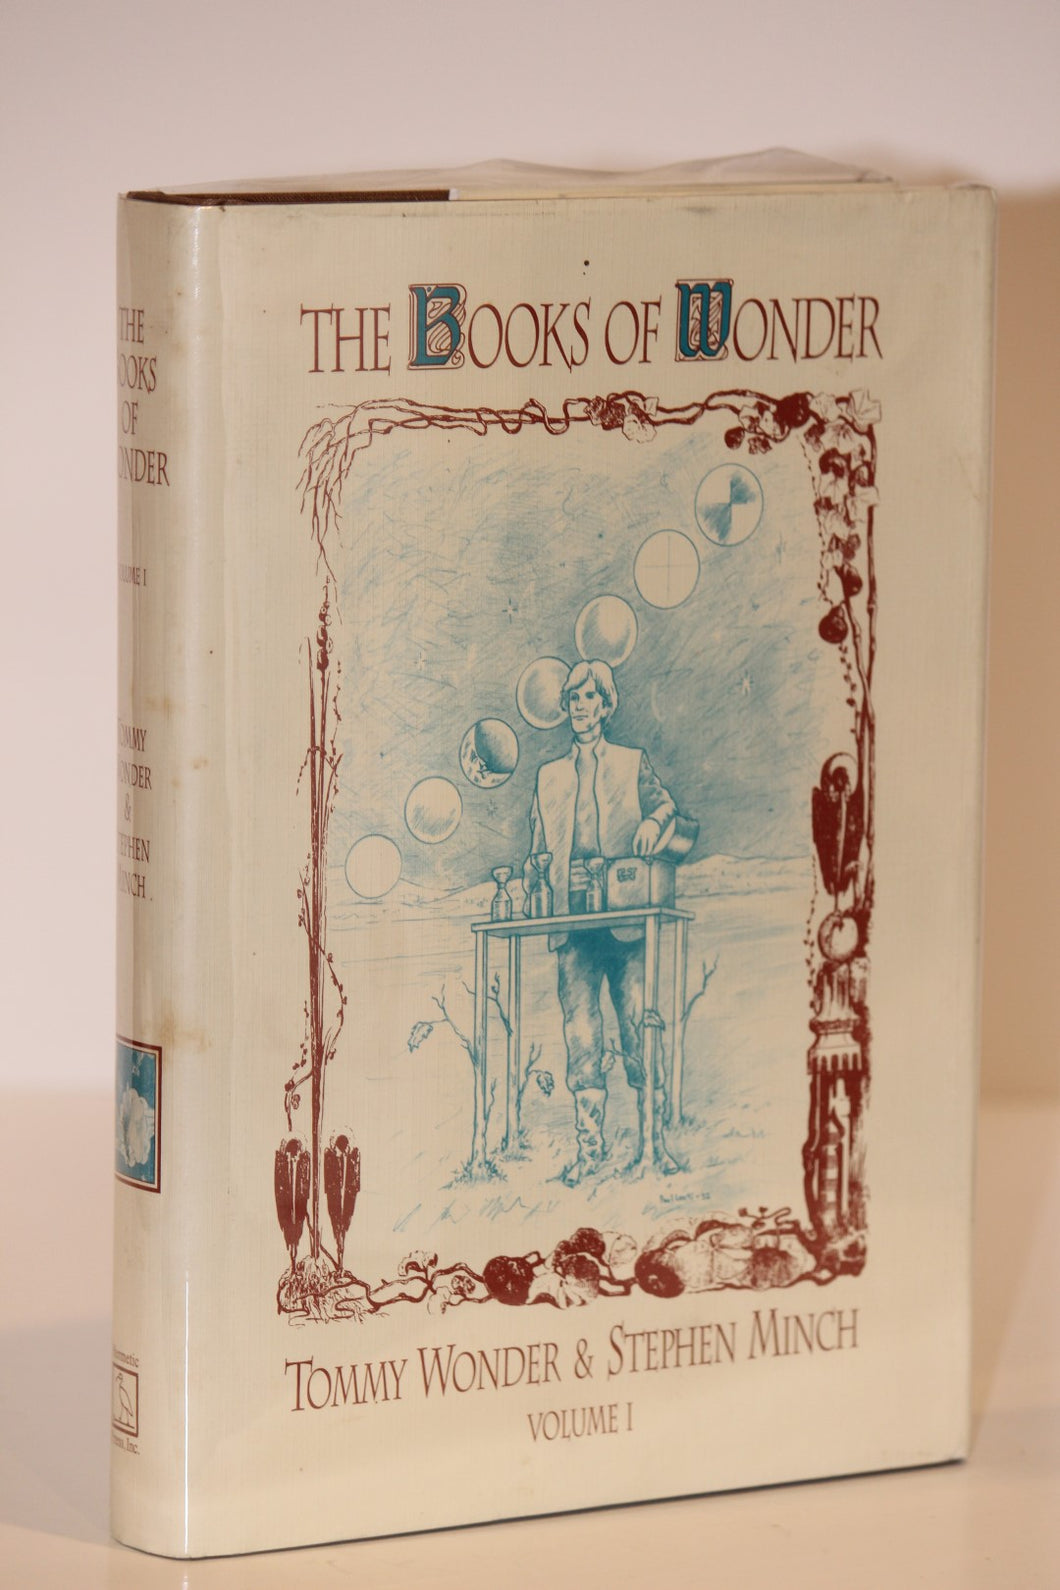 The Books of Wonder  Vol. 1 & 2  -  Tommy wonder & Stephen Minch